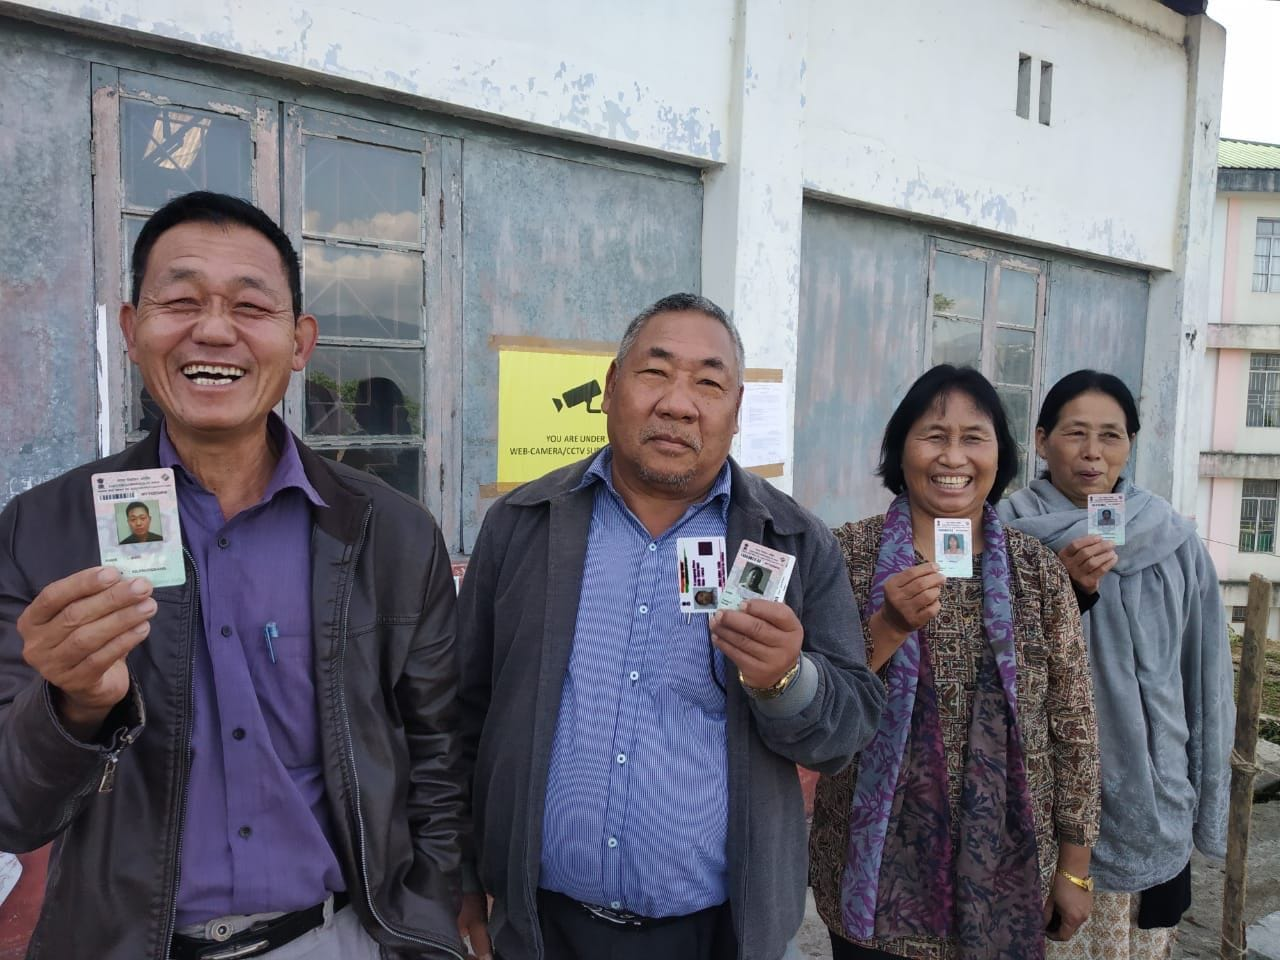 Voters in Kohima, Nagaland wait outside a polling booth to cast their votes in the first phase of Lok Sabha Elections 2019. Polling in Nagaland is for one constituency.